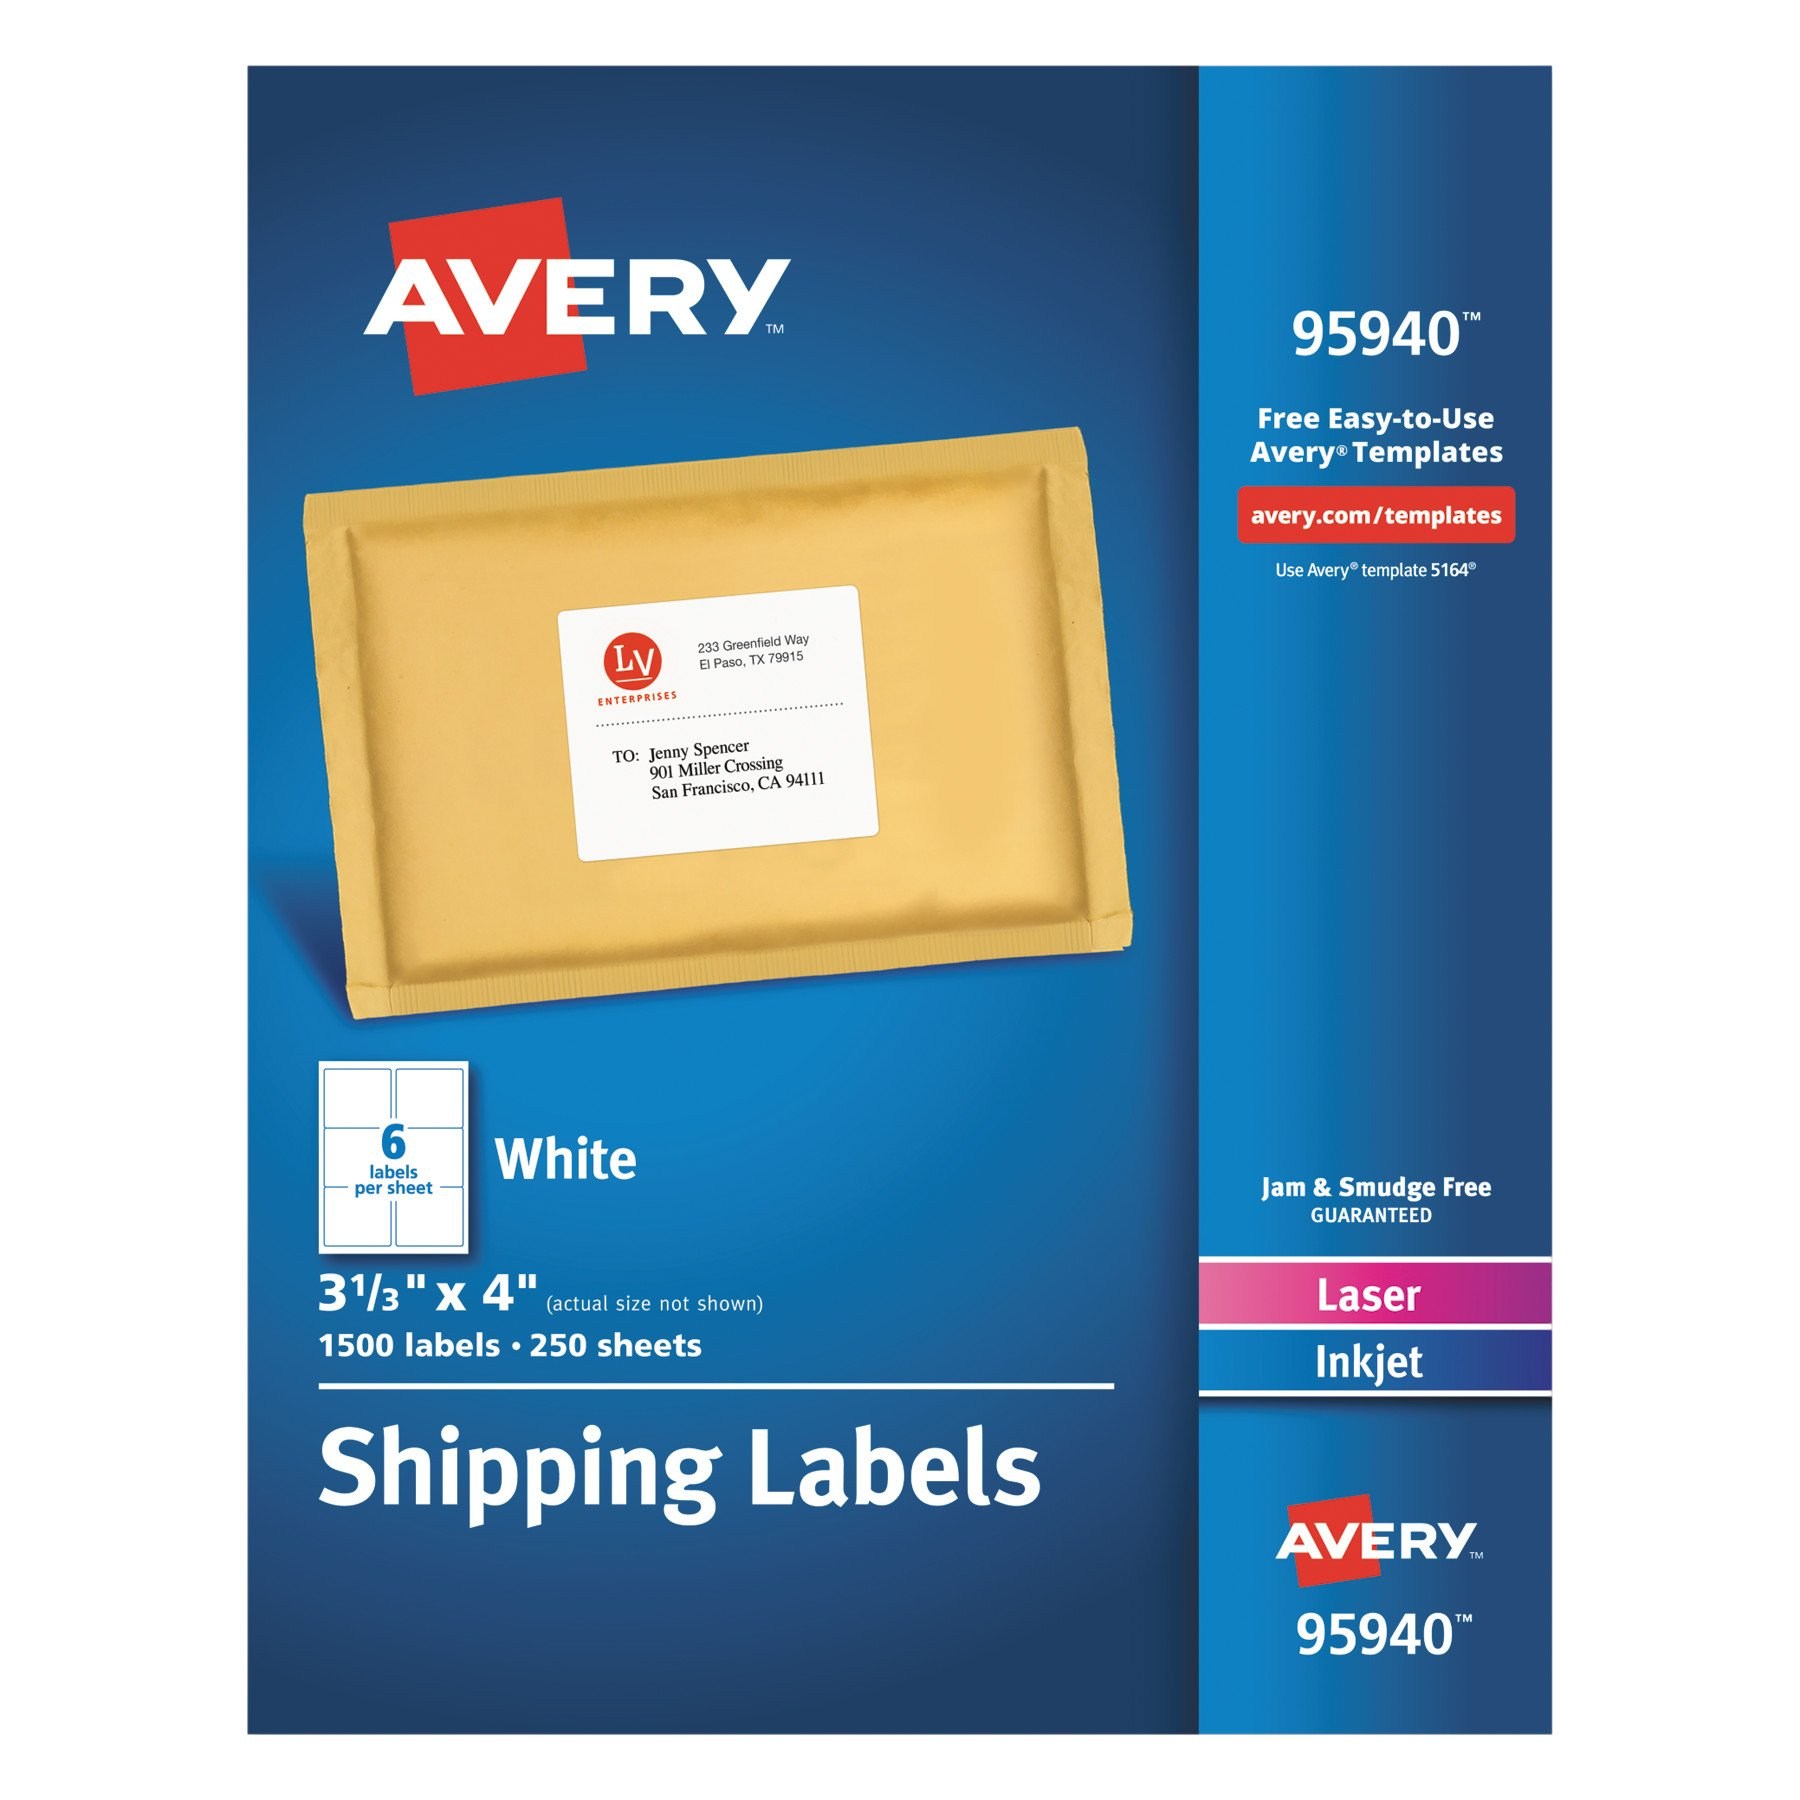 Avery Shipping Address Labels, Laser & Inkjet Printers, 1,500 Labels, 3-1/3x4 Labels, Permanent Adhesive (95940)